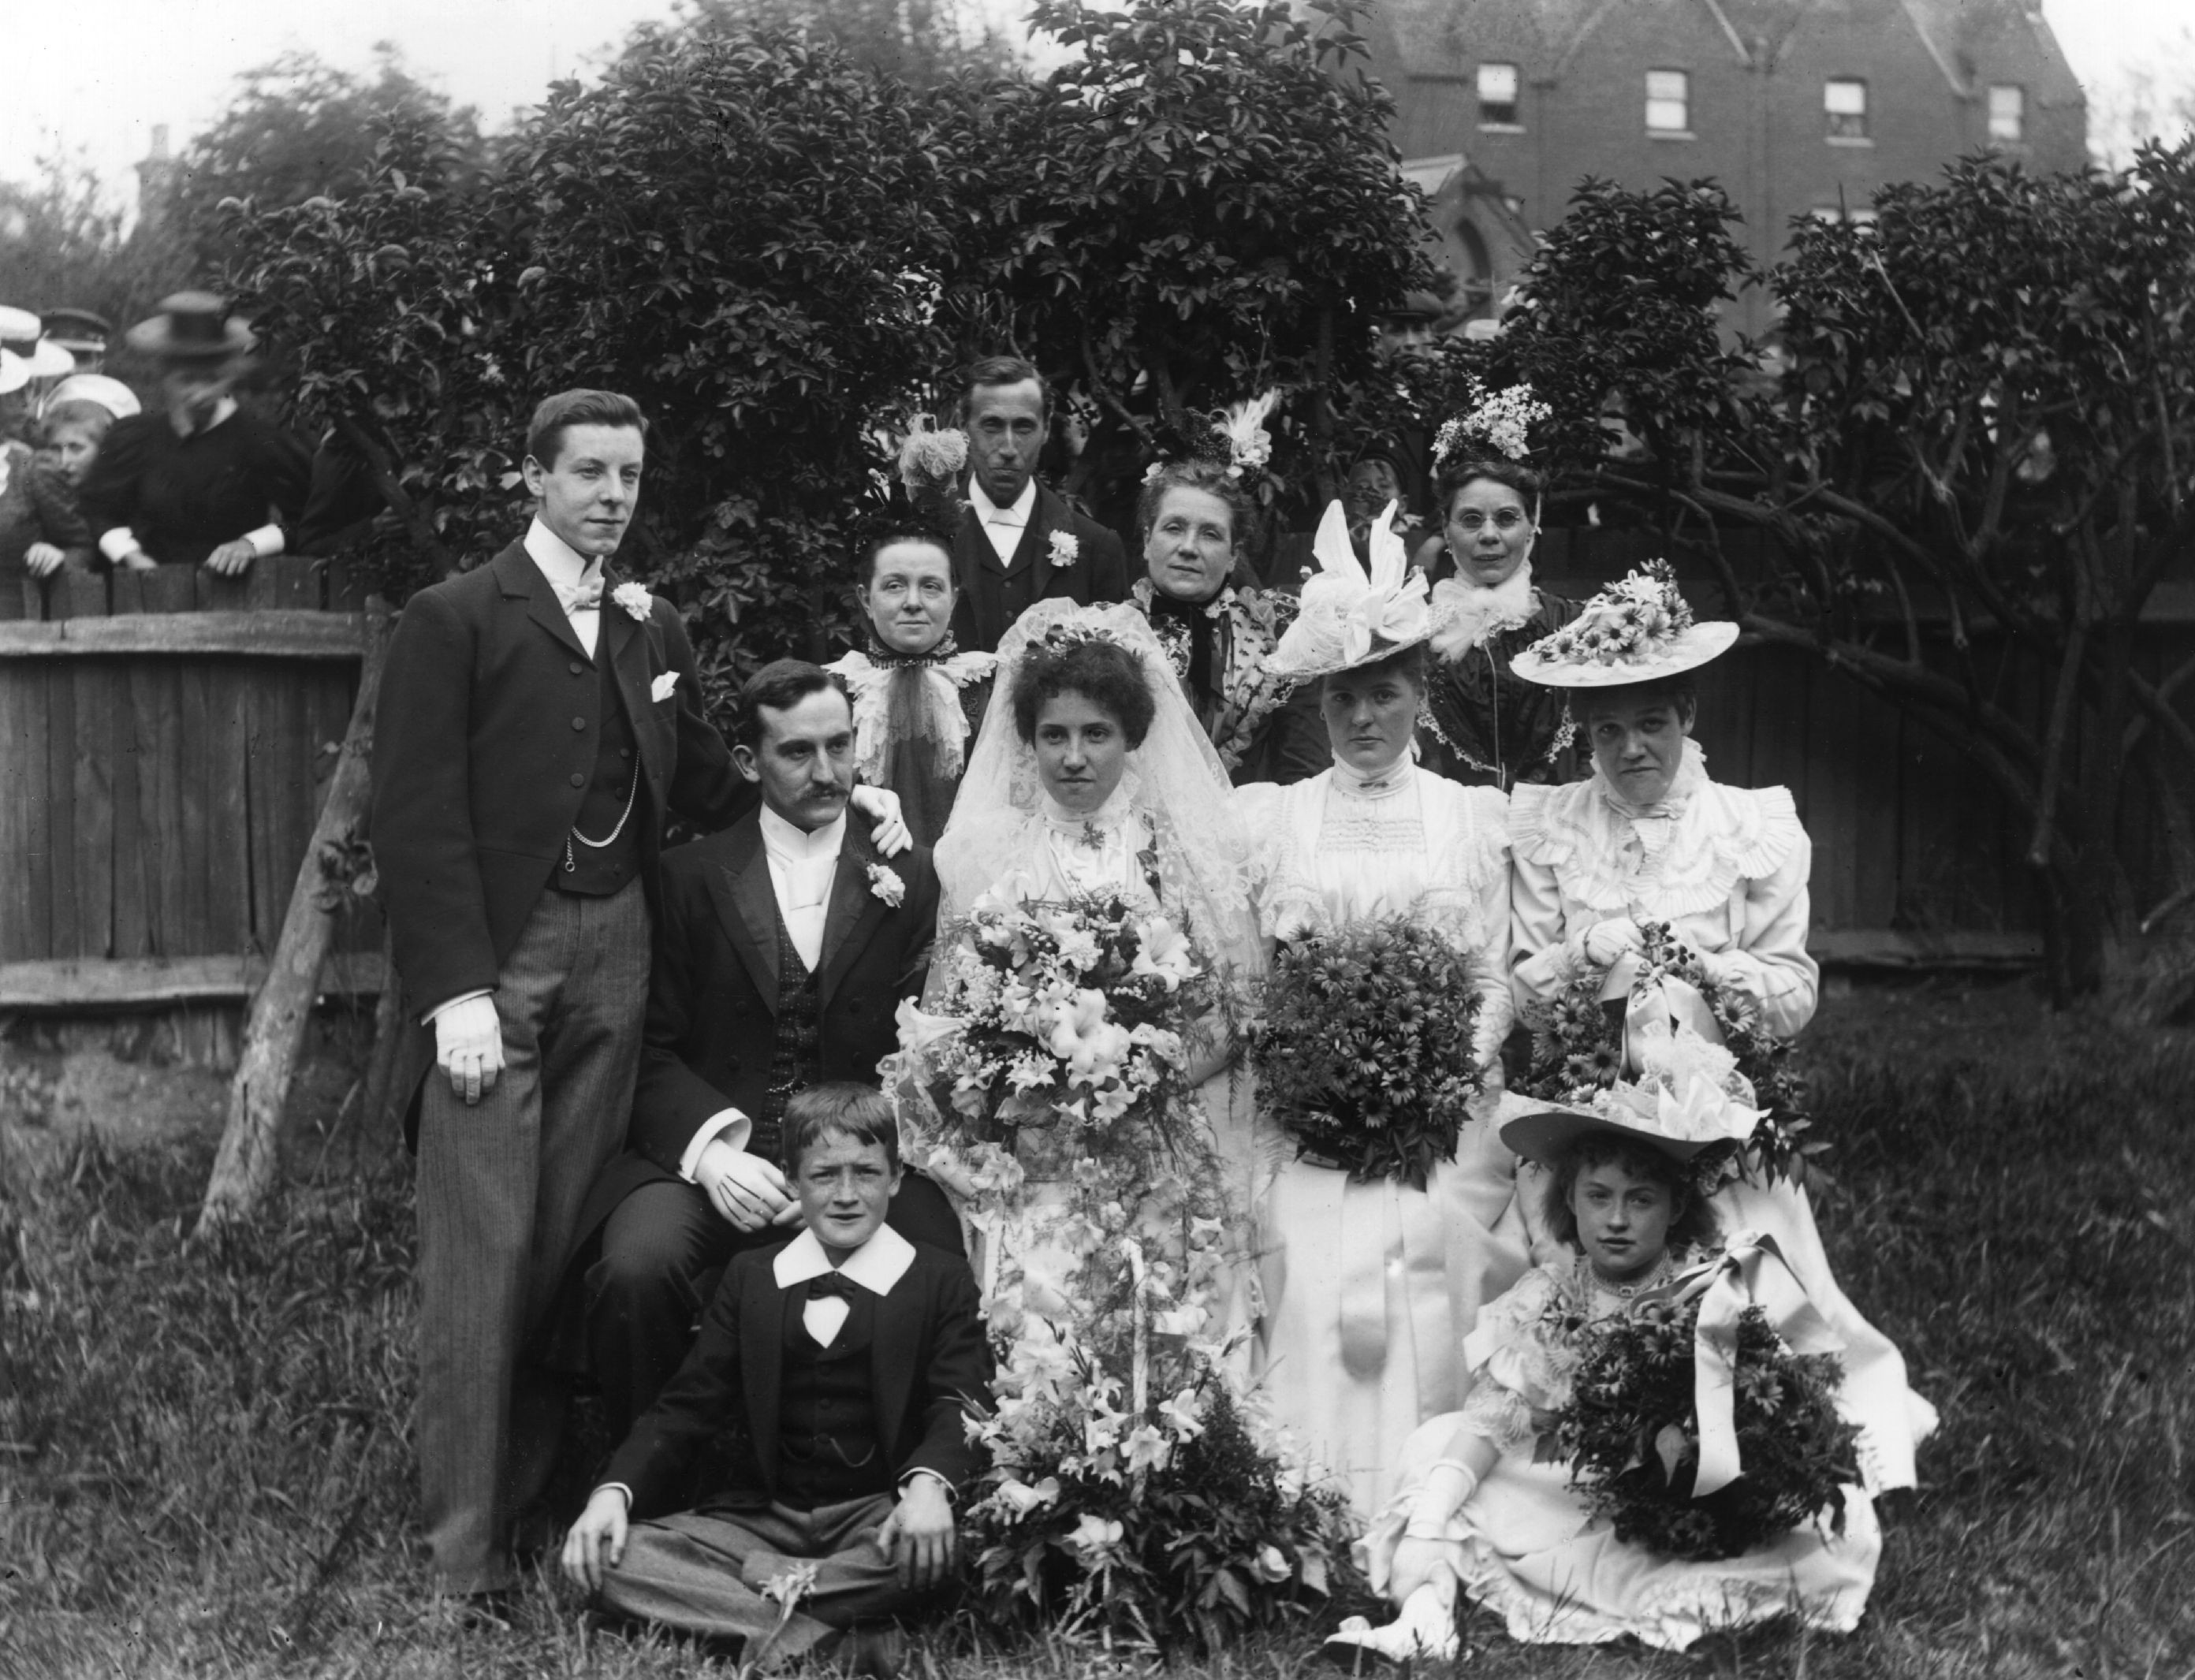 Victorian wedding, circa 1900: A wedding group poses in the garden, 1900. (Photo by F J Mortimer/Getty Images)